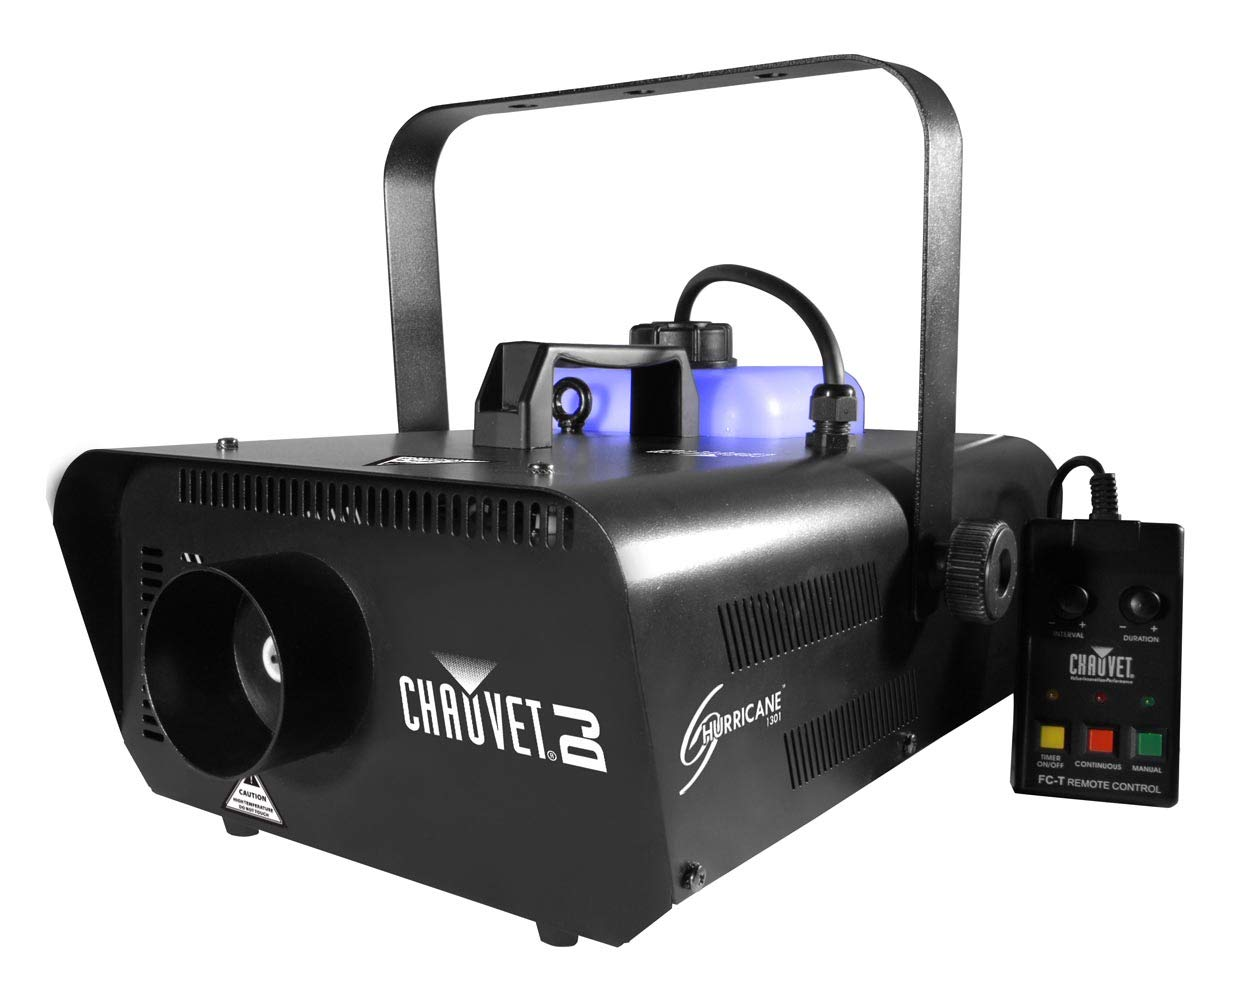 Chauvet Hurricane 1301 H1301 Pro Smoke Fog Machine Fogger w/ FC-T Wired Remote